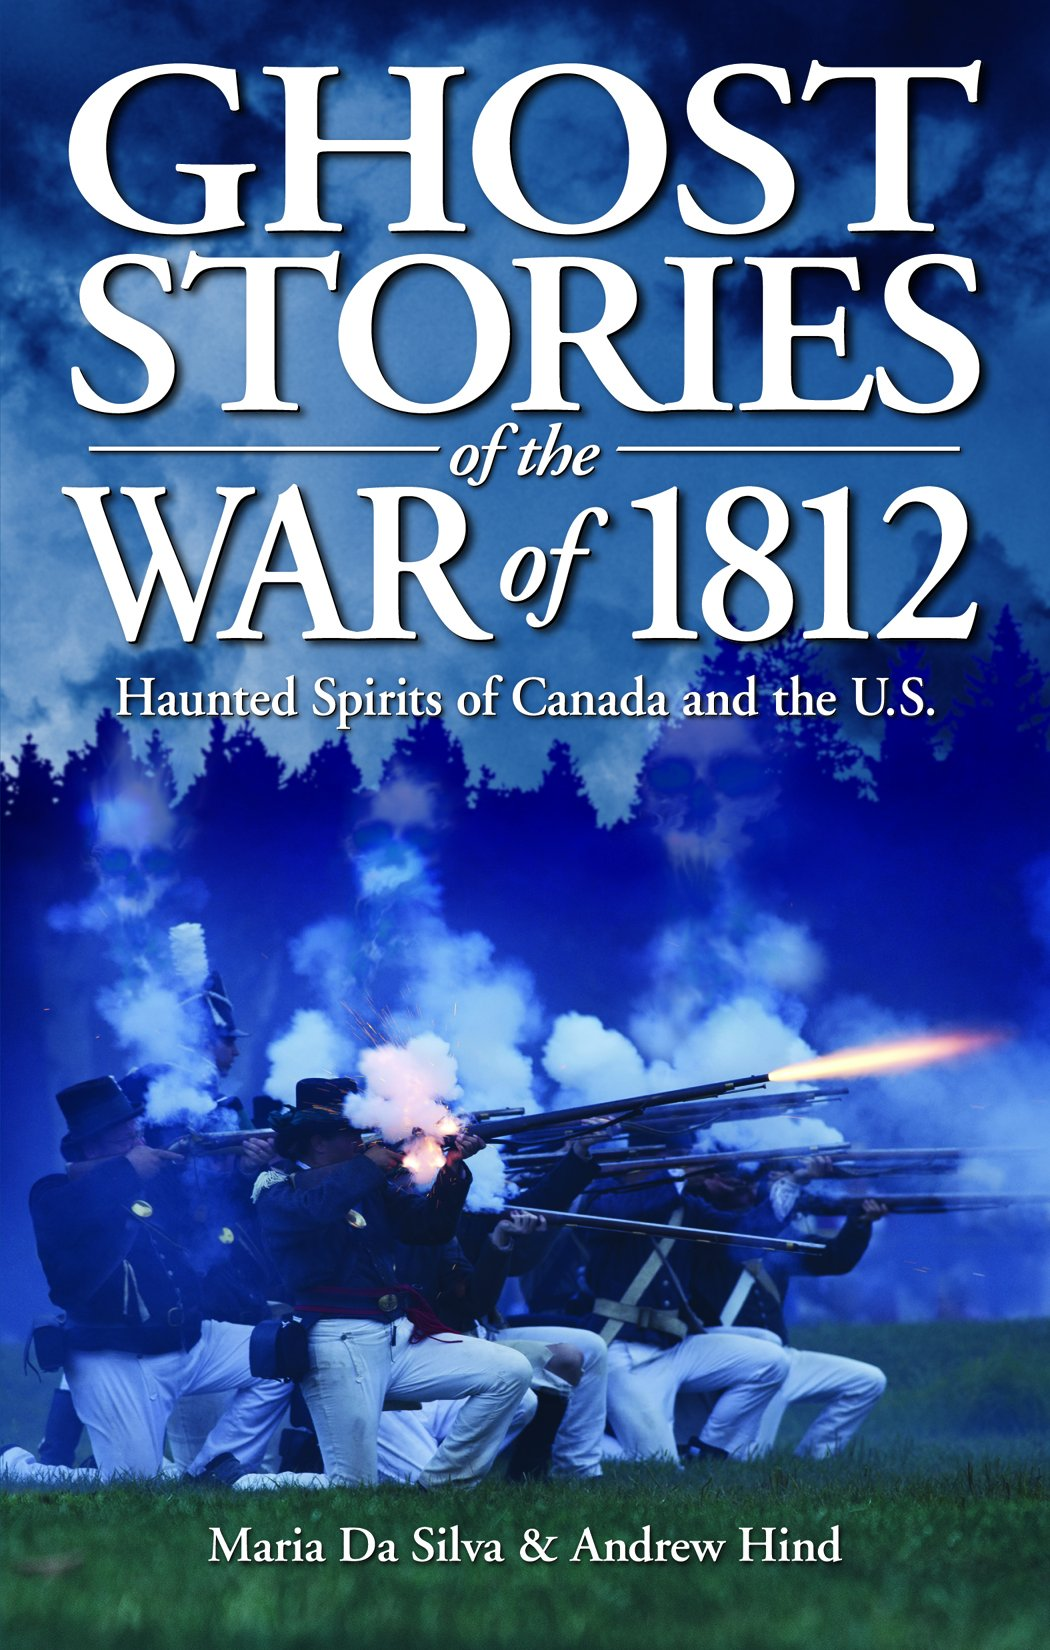 Ghost Stories of the War of 1812: Haunted Spirits of Canada and the U.S. PDF